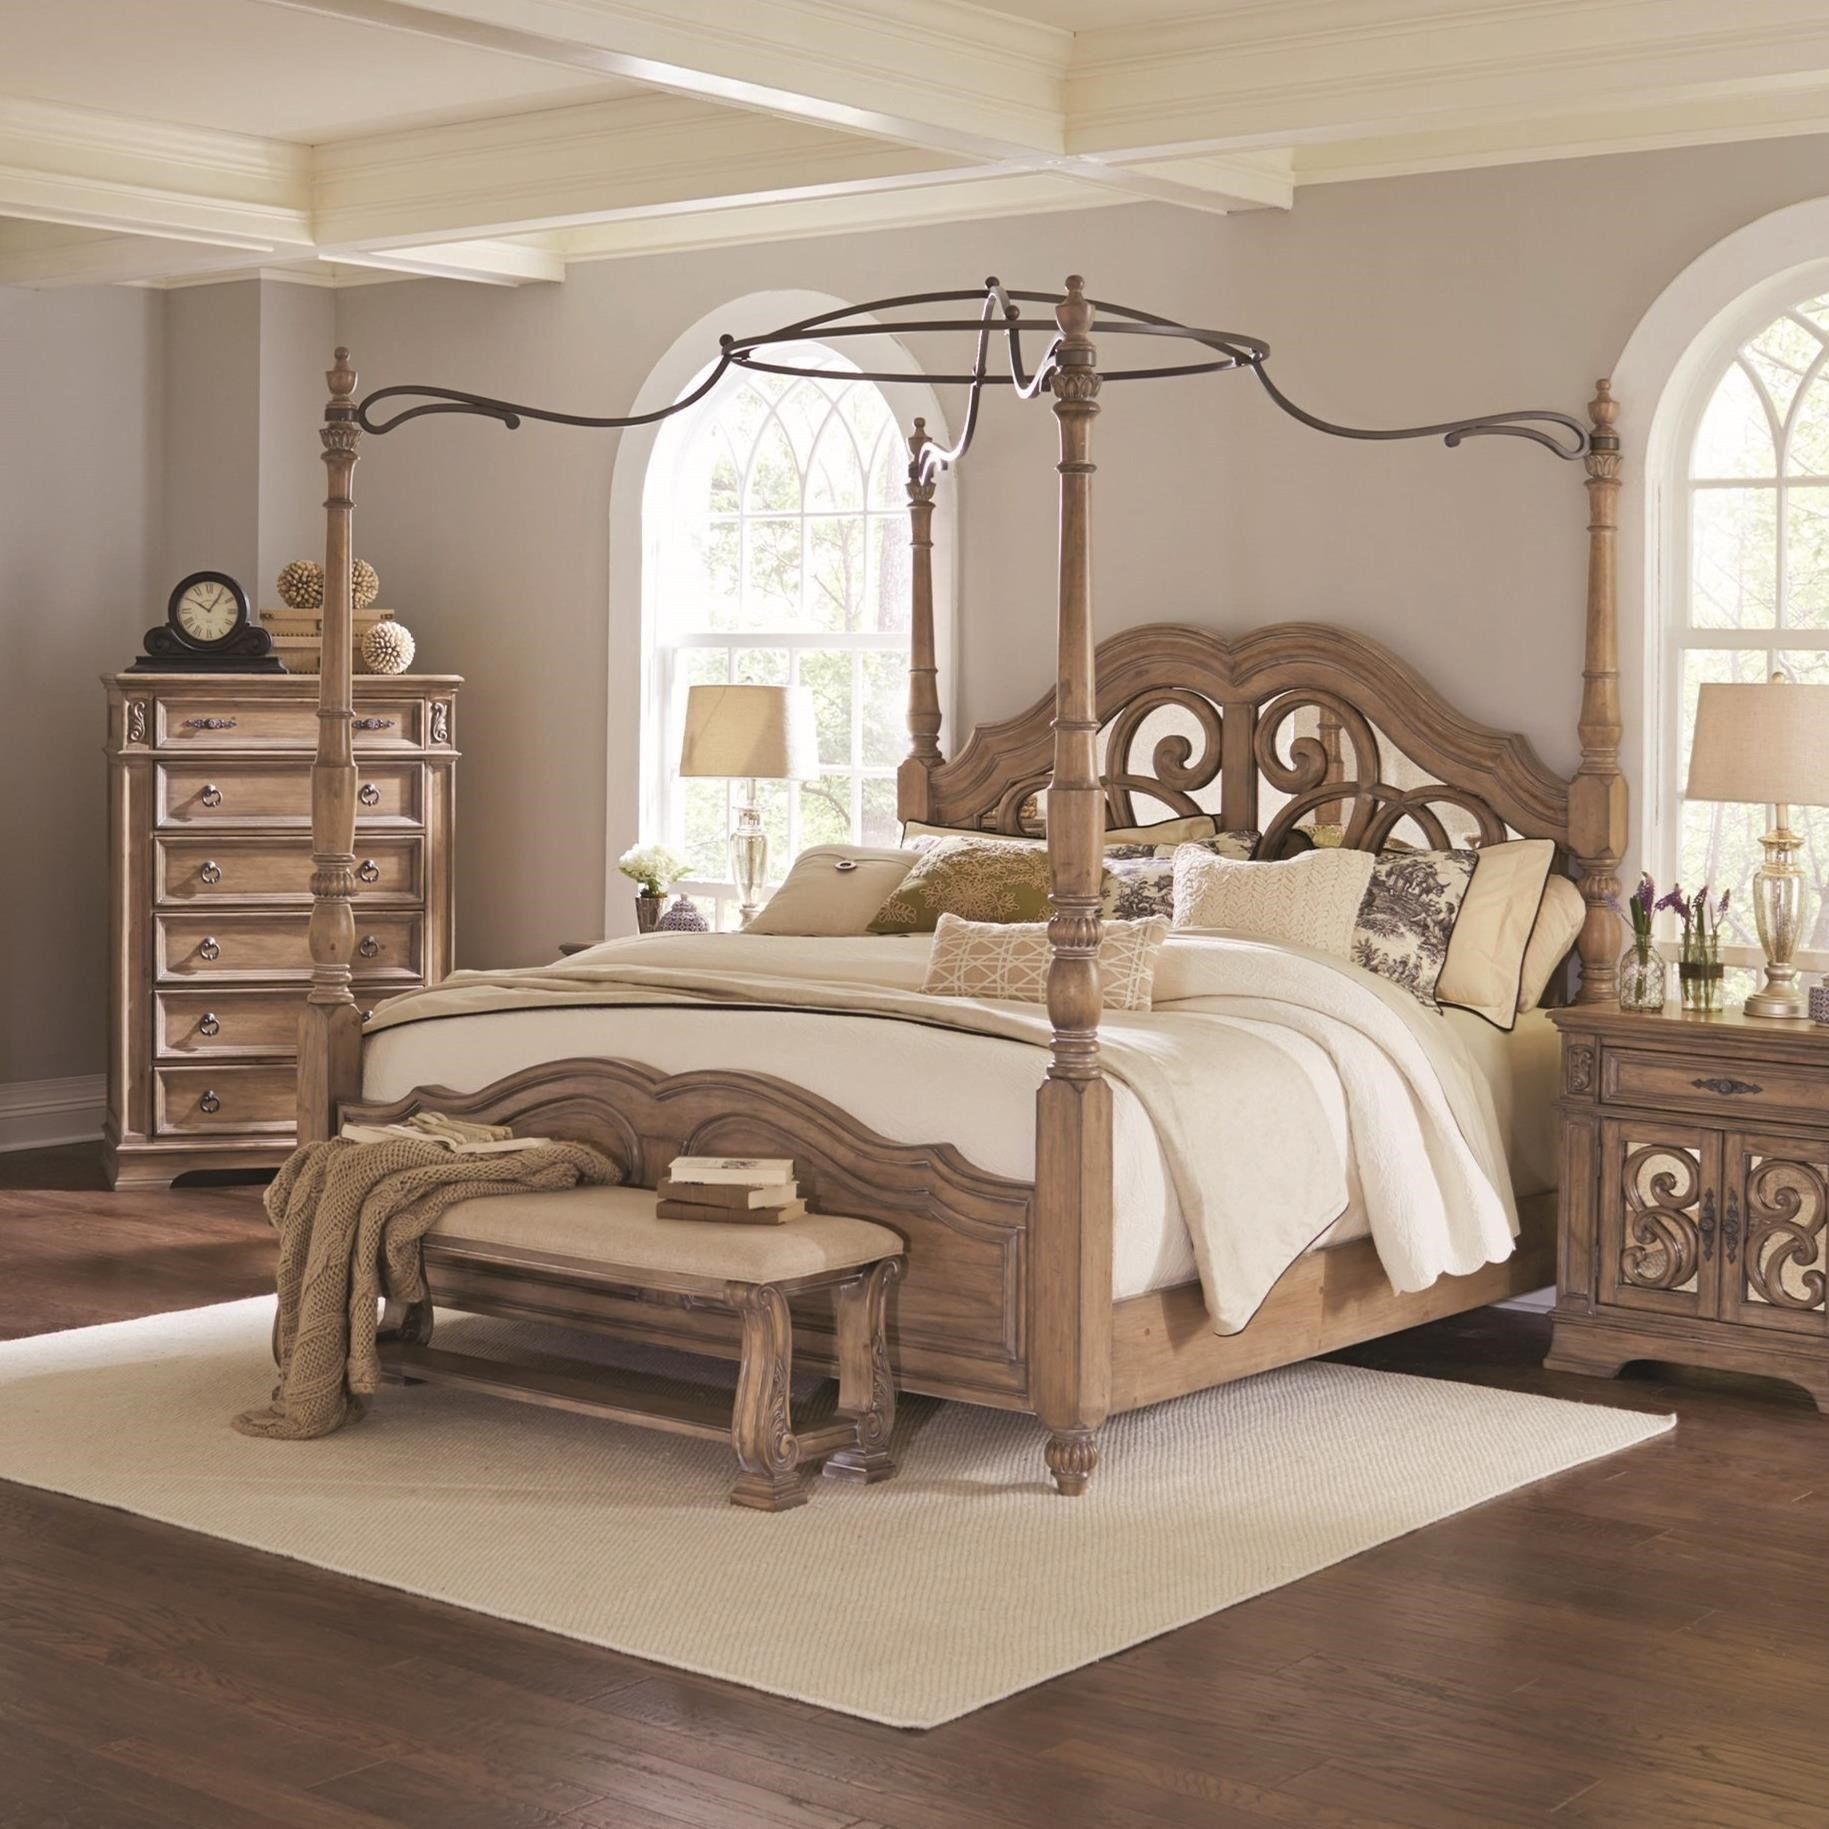 Best Coaster Ilana Queen Canopy Bed With Mirror Back Headboard With Pictures